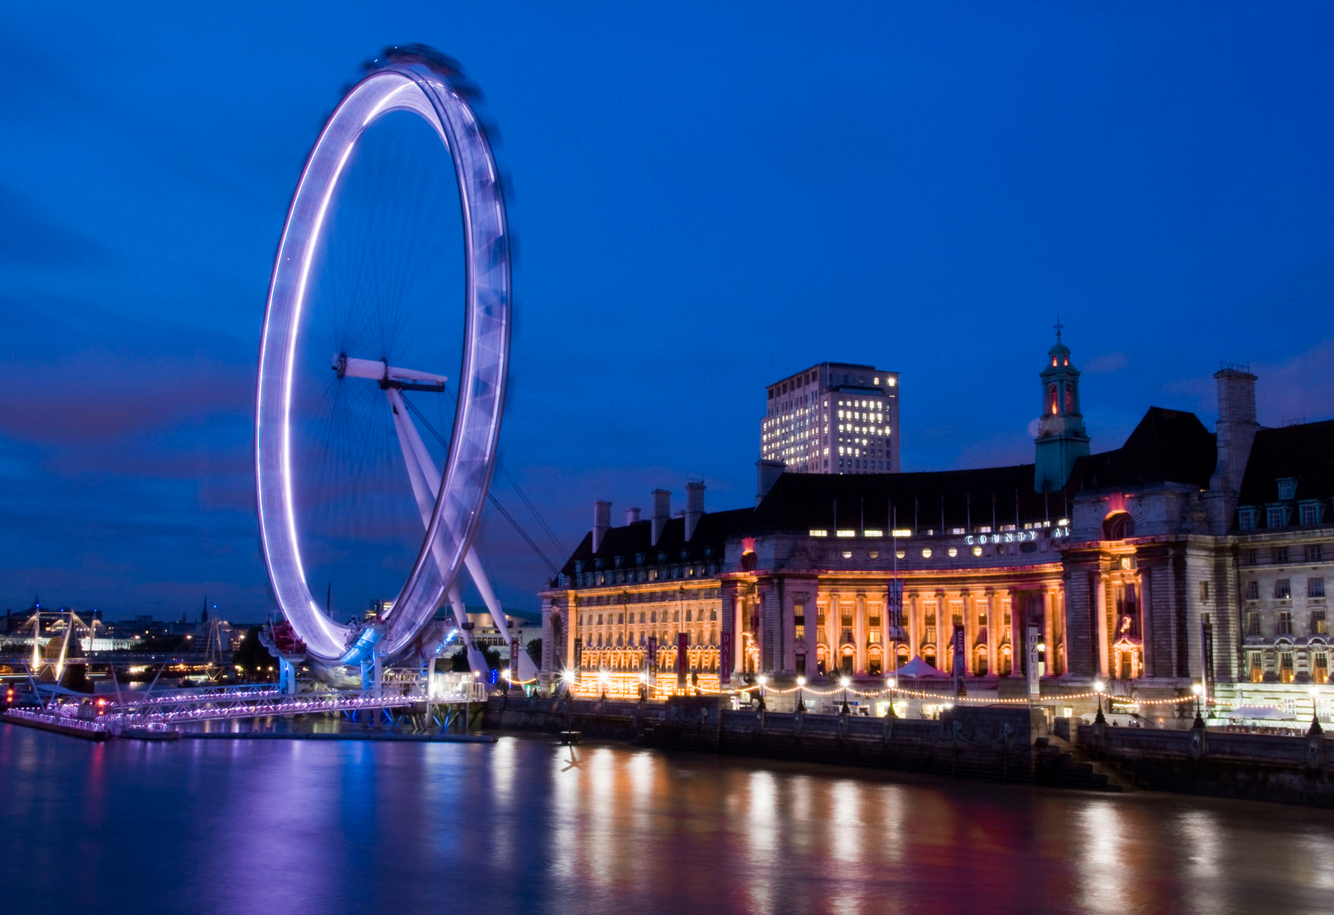 The London Eye, London, England